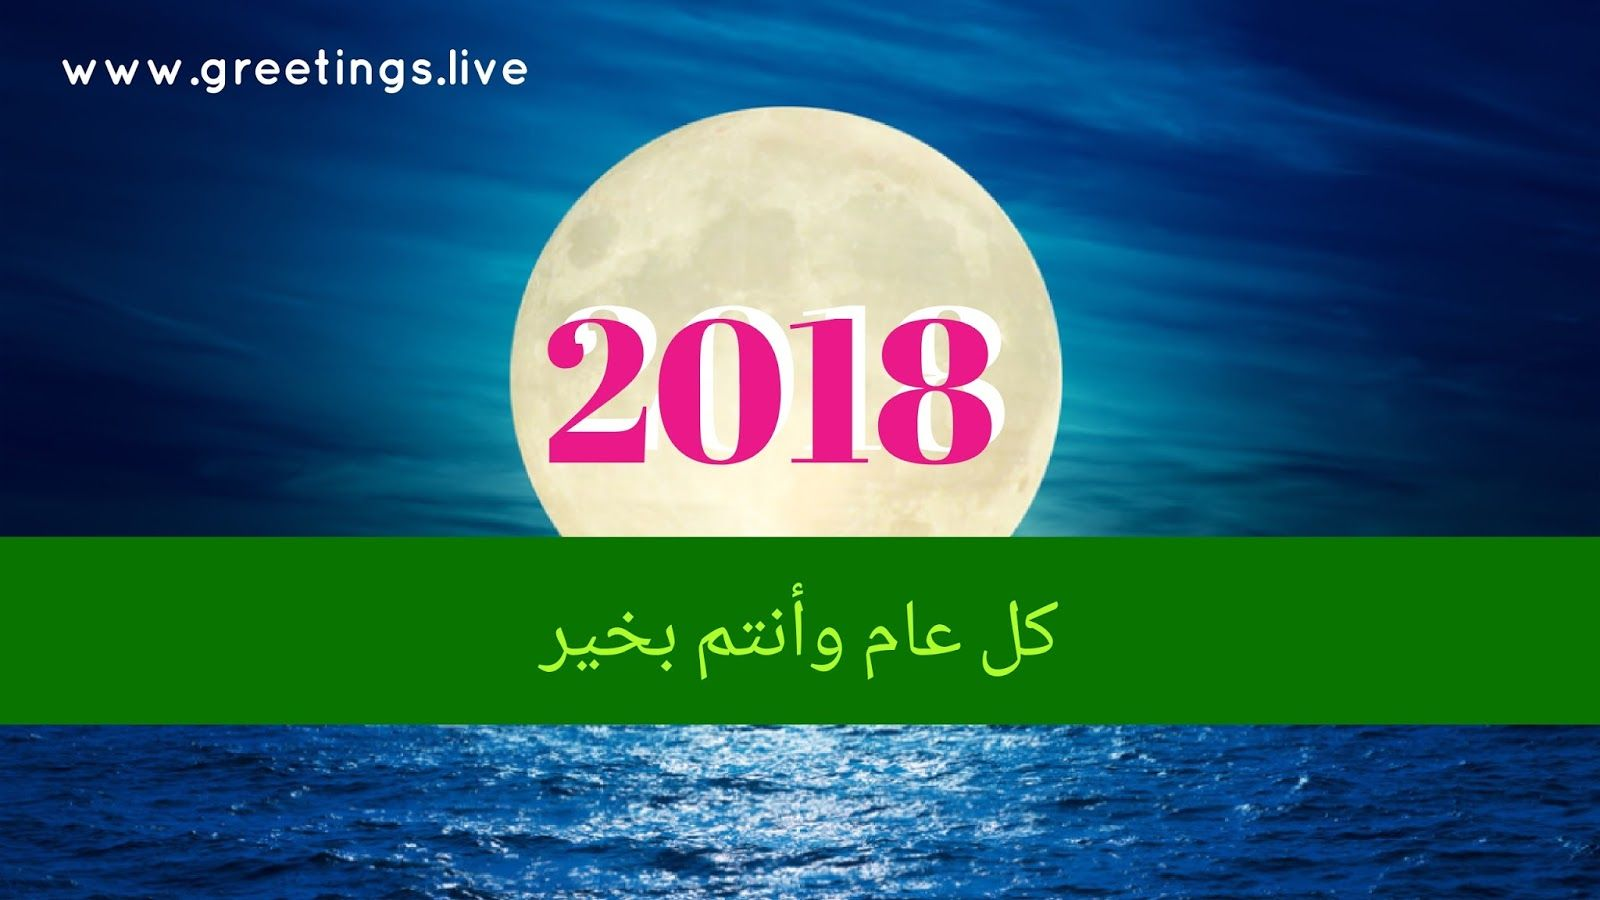 big moon light happy new year 2018 greetings in arabic language new year wishes happy